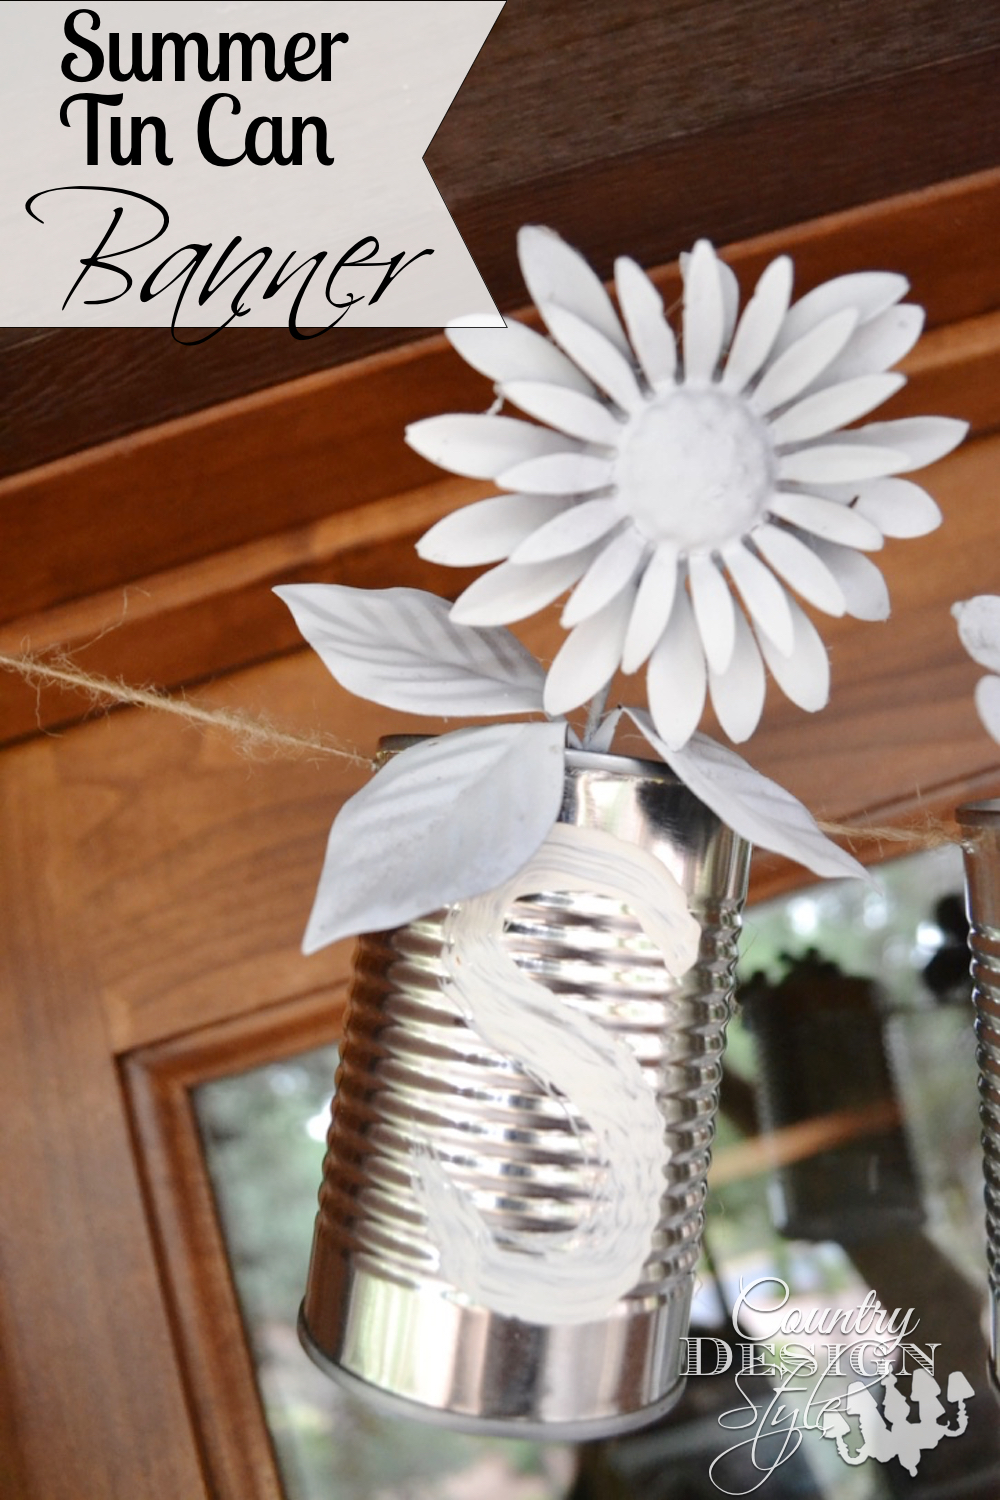 A summer project idea for a banner with worksheet download. Ideas for other tin can diy projects. Country Design Style